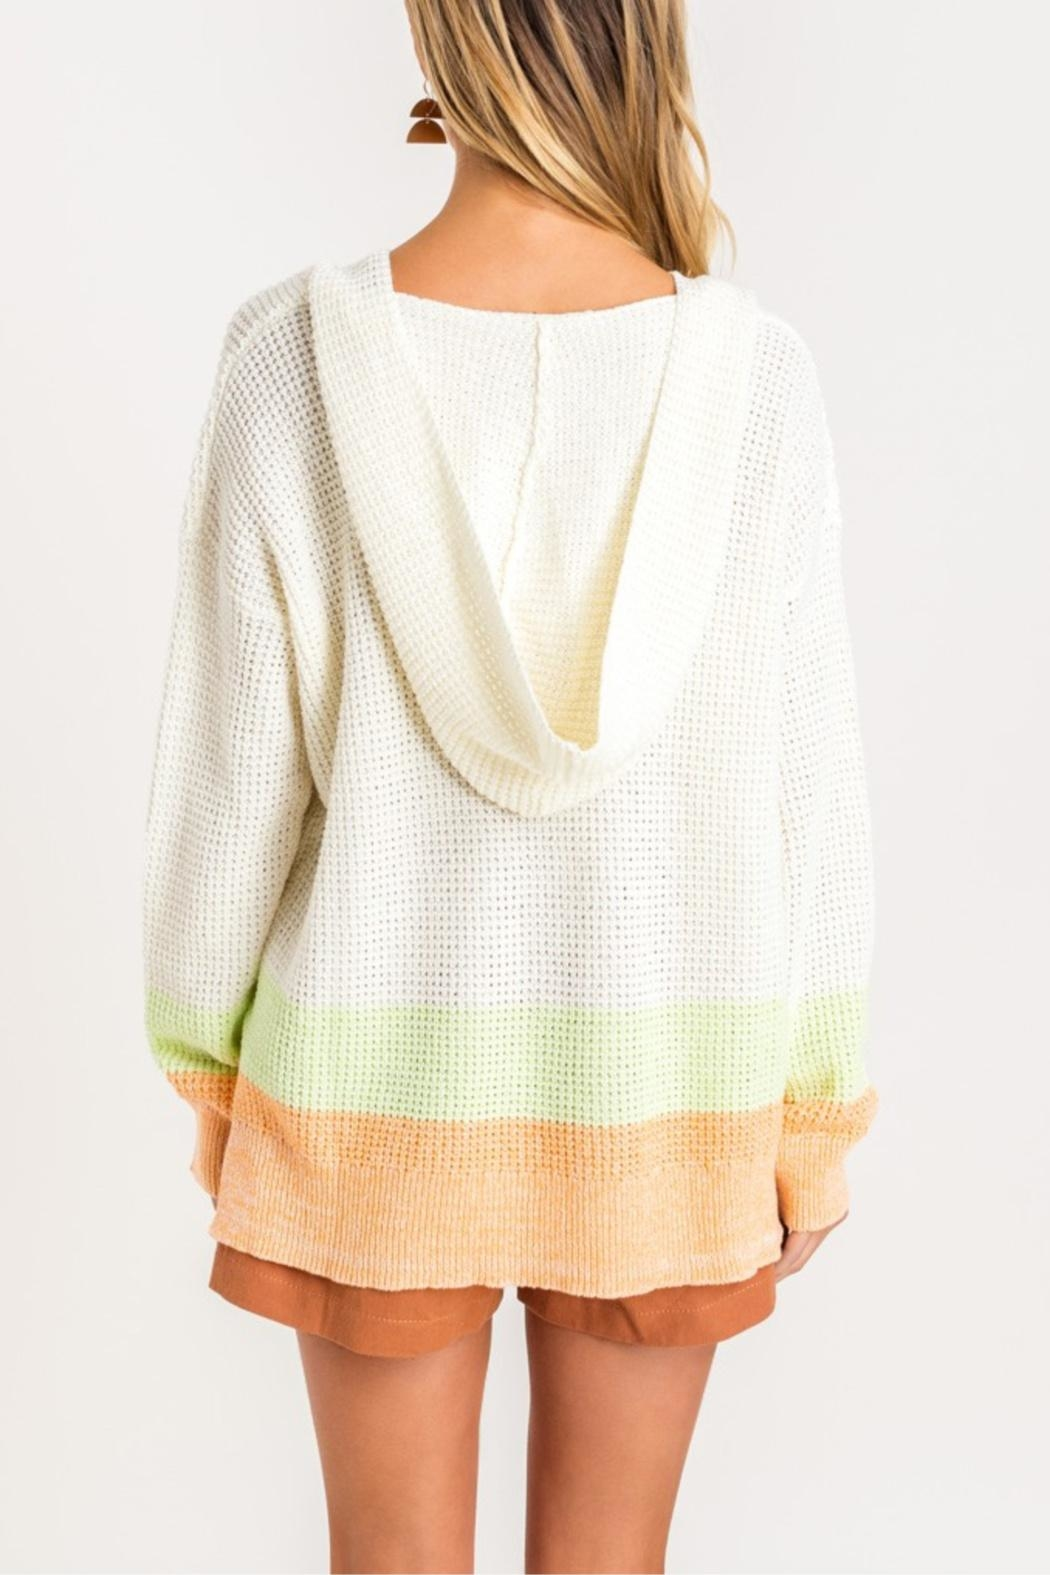 Lush Sherbert Dreams Sweater - Side Cropped Image